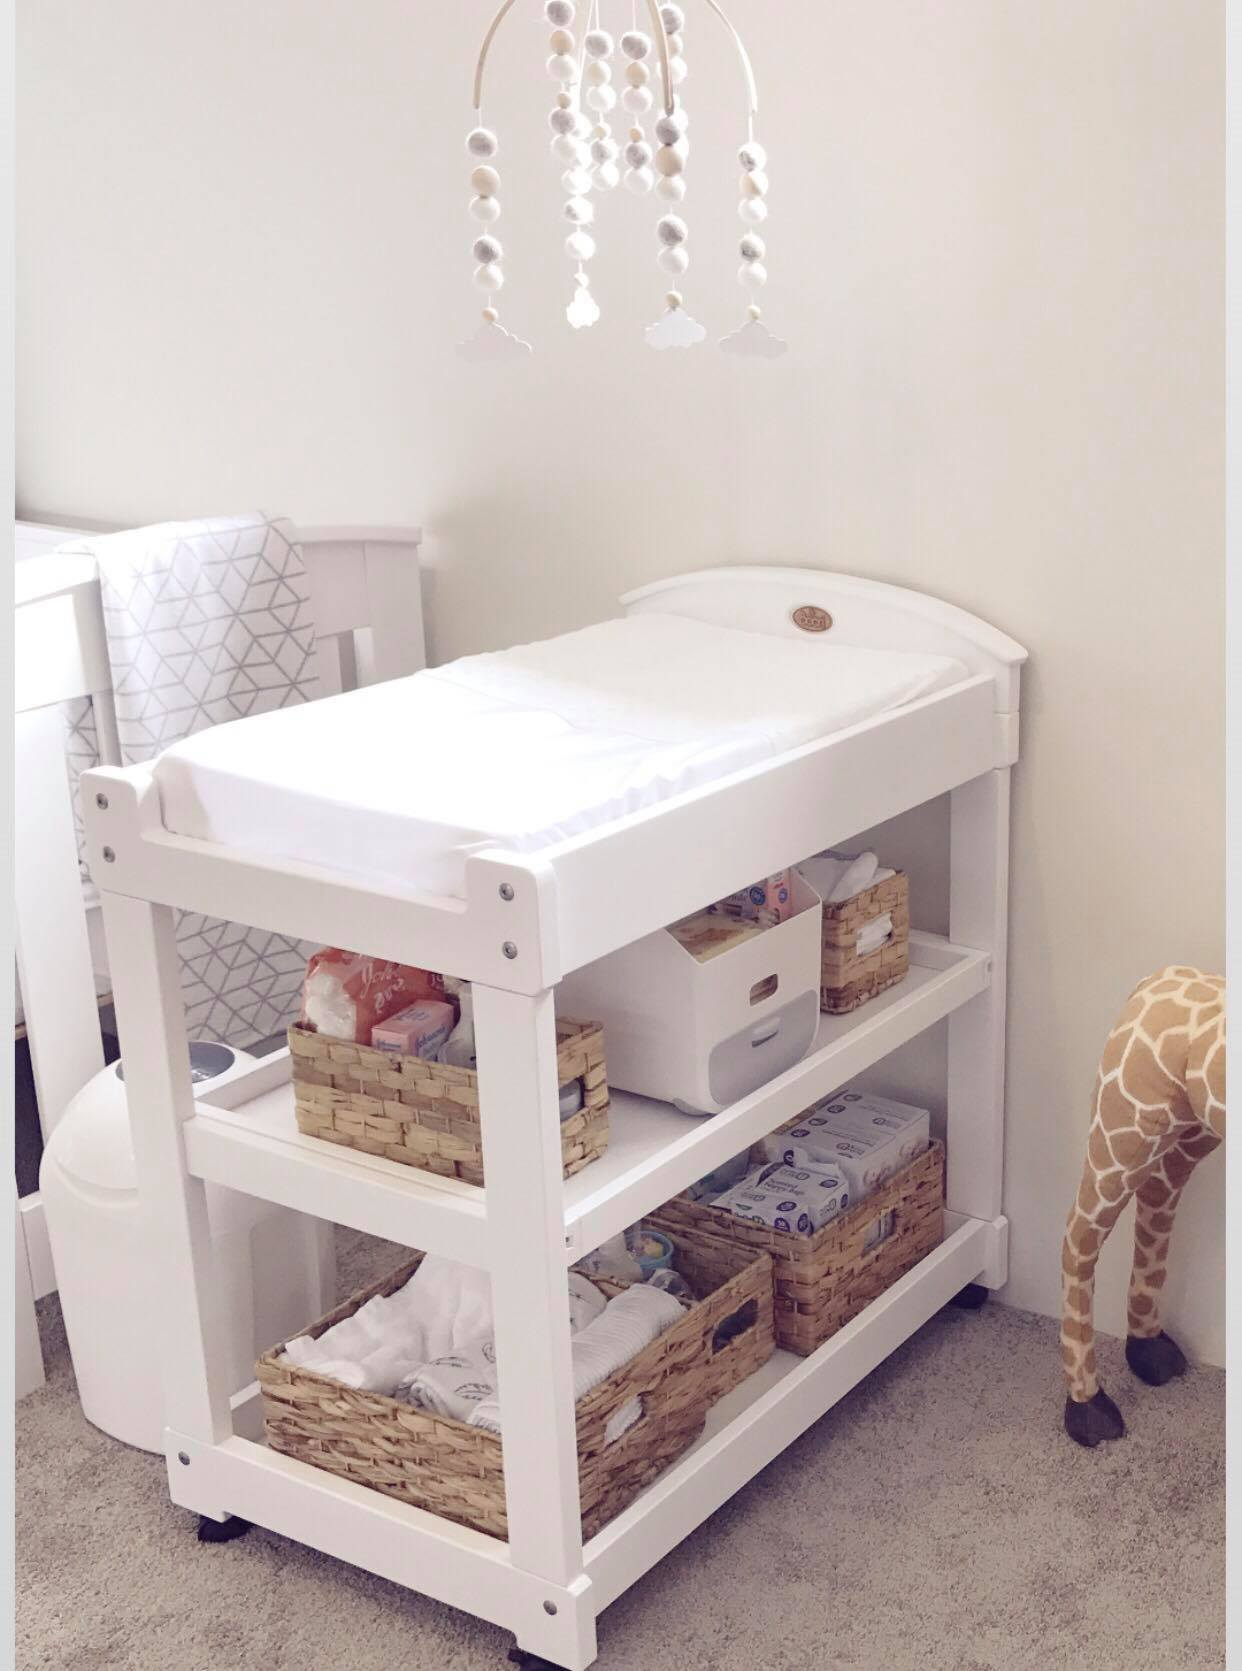 Finally I Have Set Up All The Bits And Pieces I Need For My Change Table!  For Those People That Know Me Well, I Tend To Be Highly Organised, ...